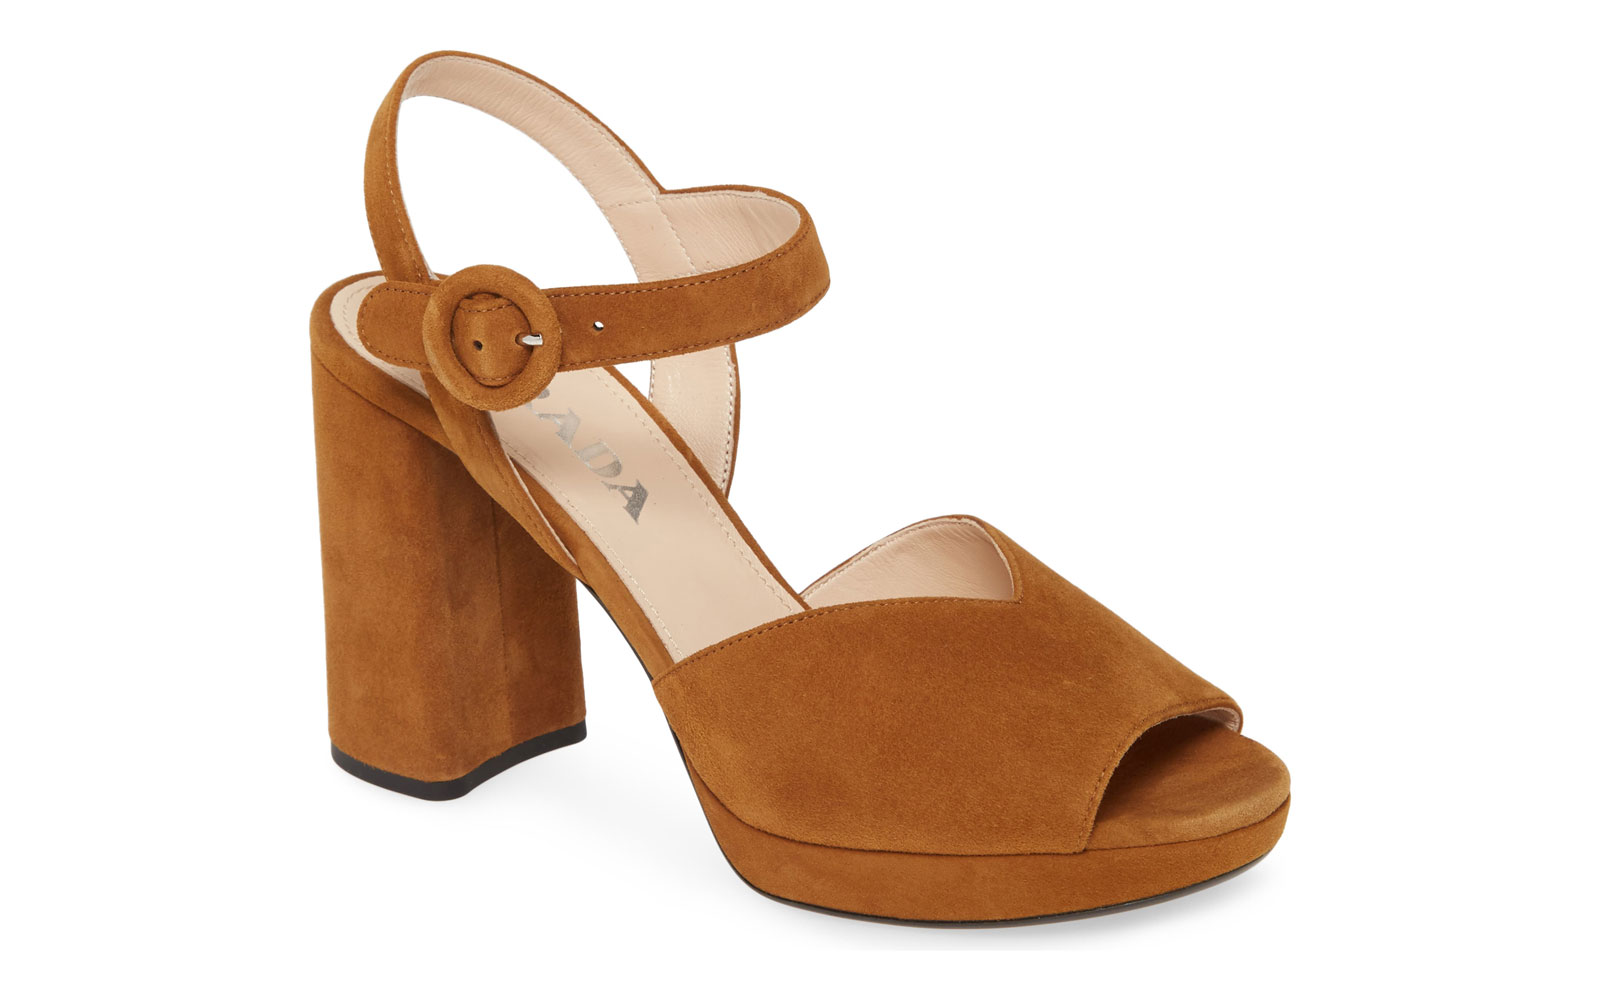 Camel suede heeled sandals